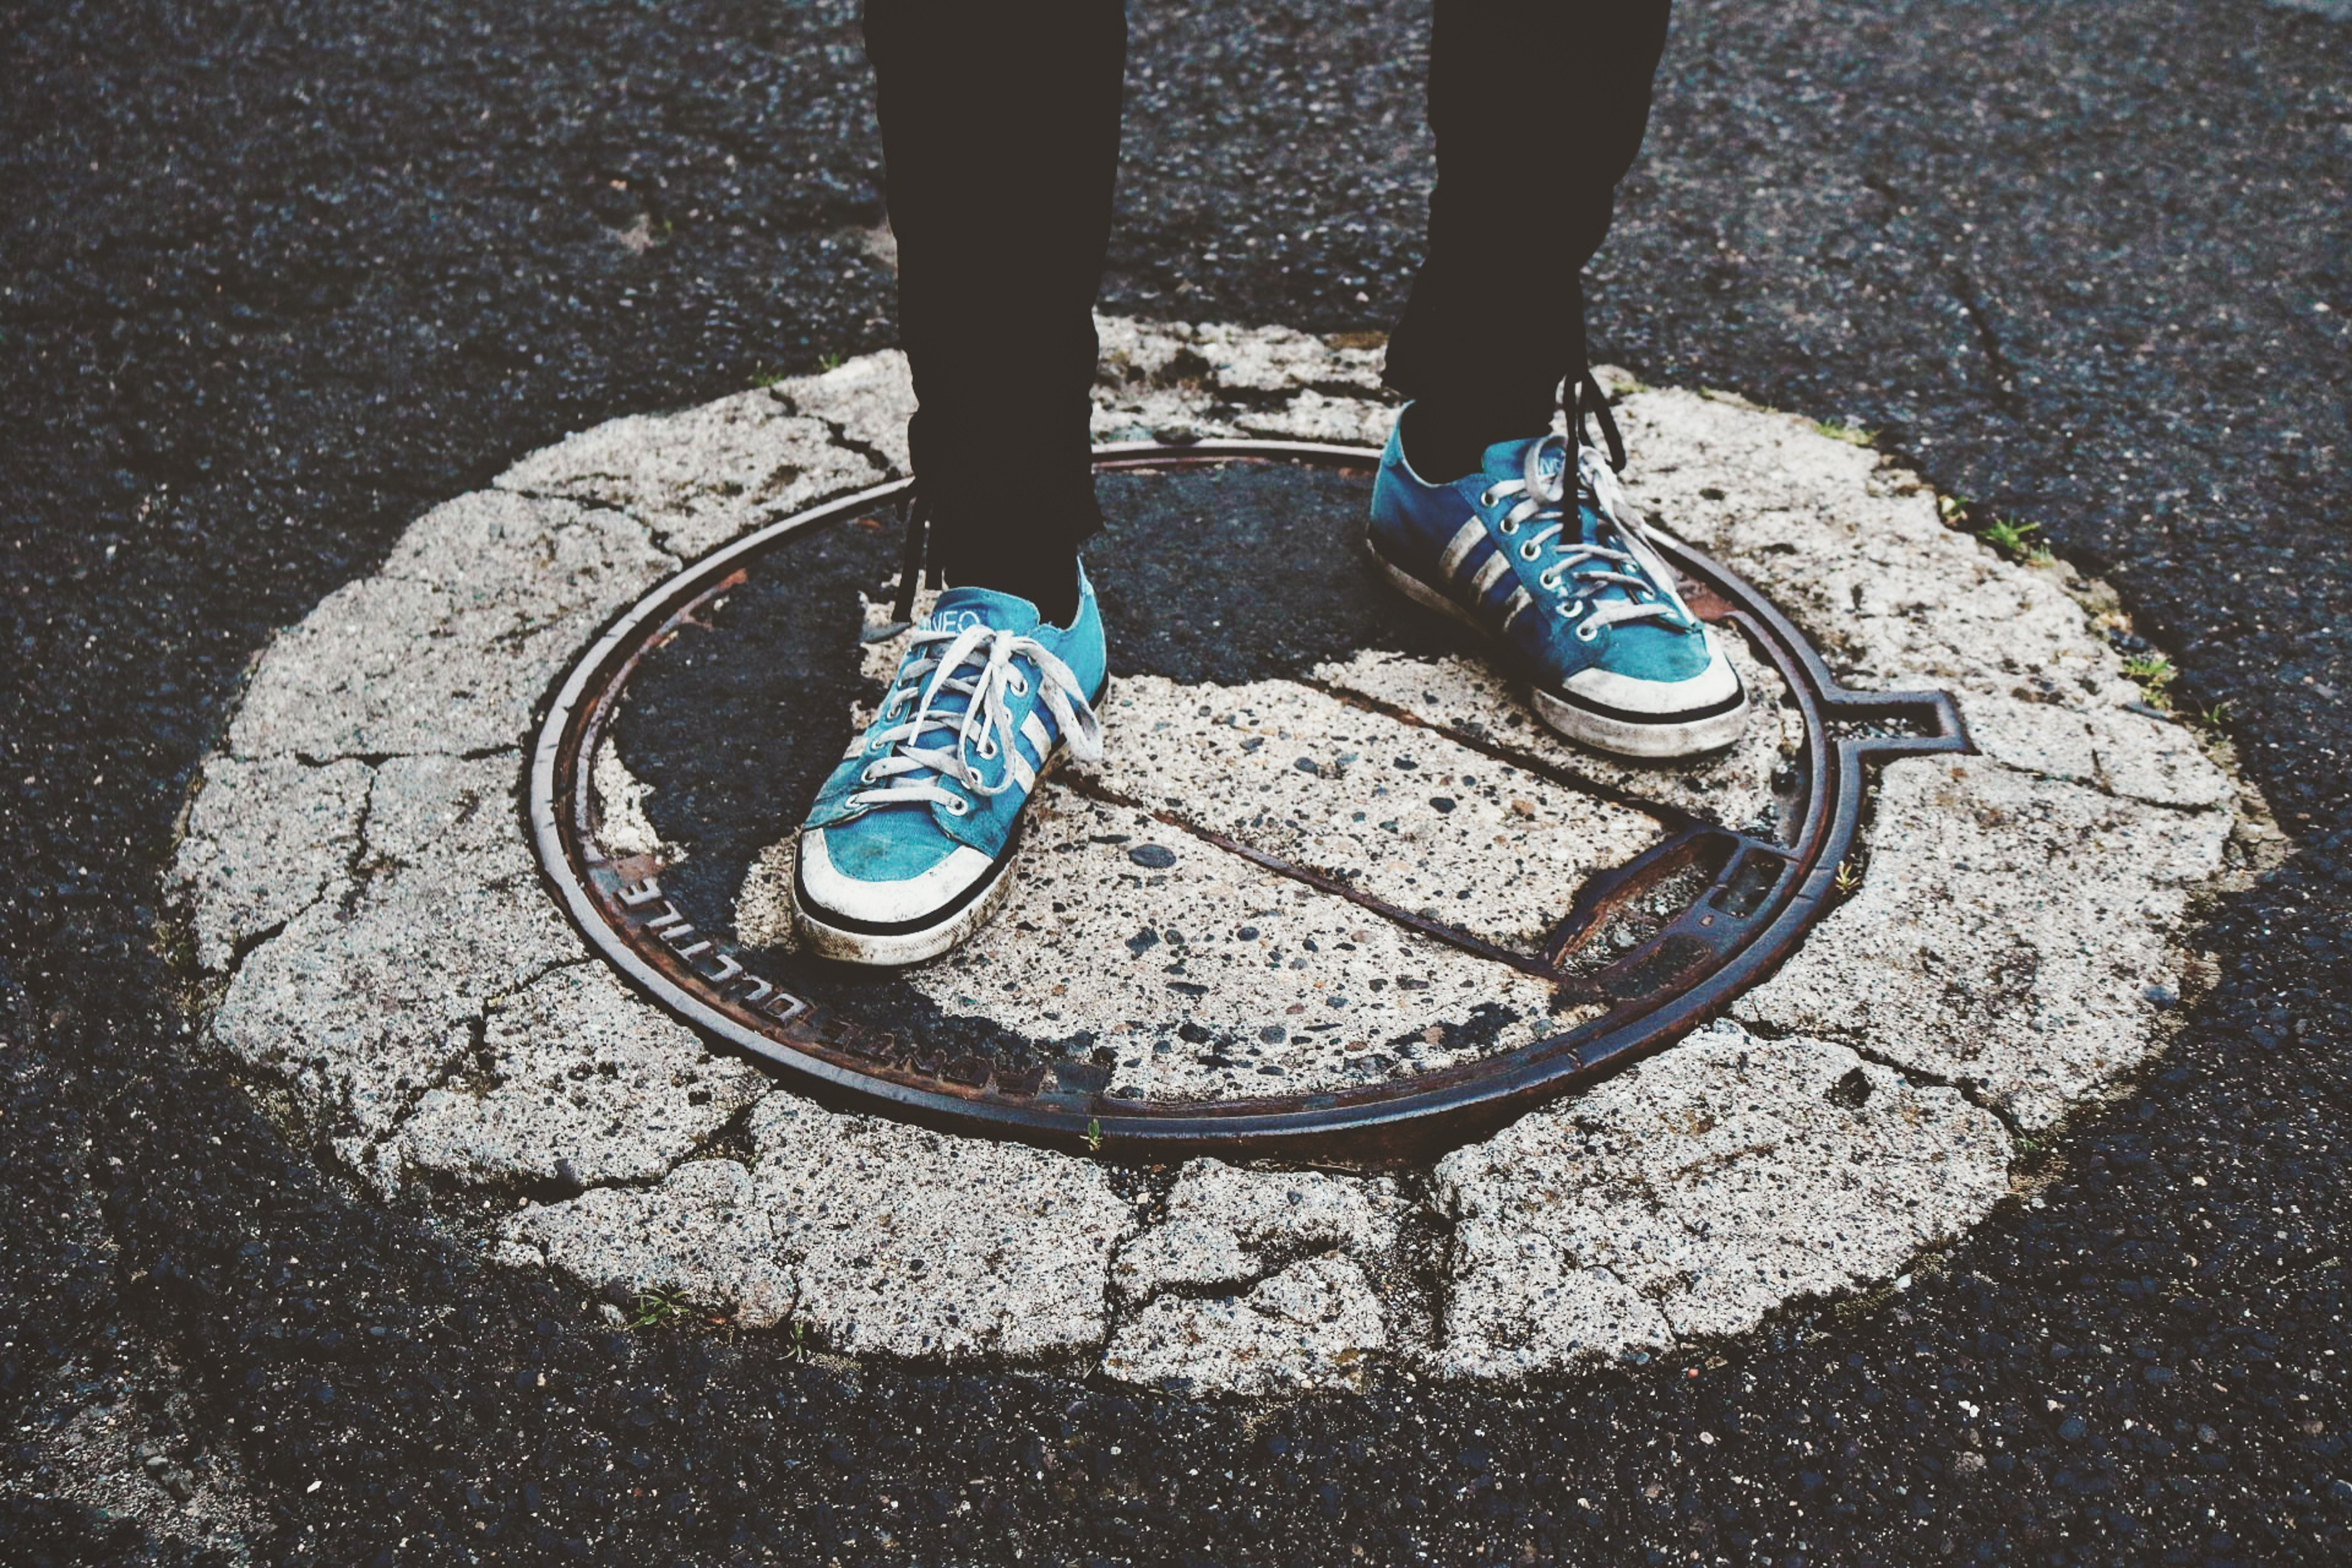 person wearing blue-and-white sneakers standing on pavement at daytimew